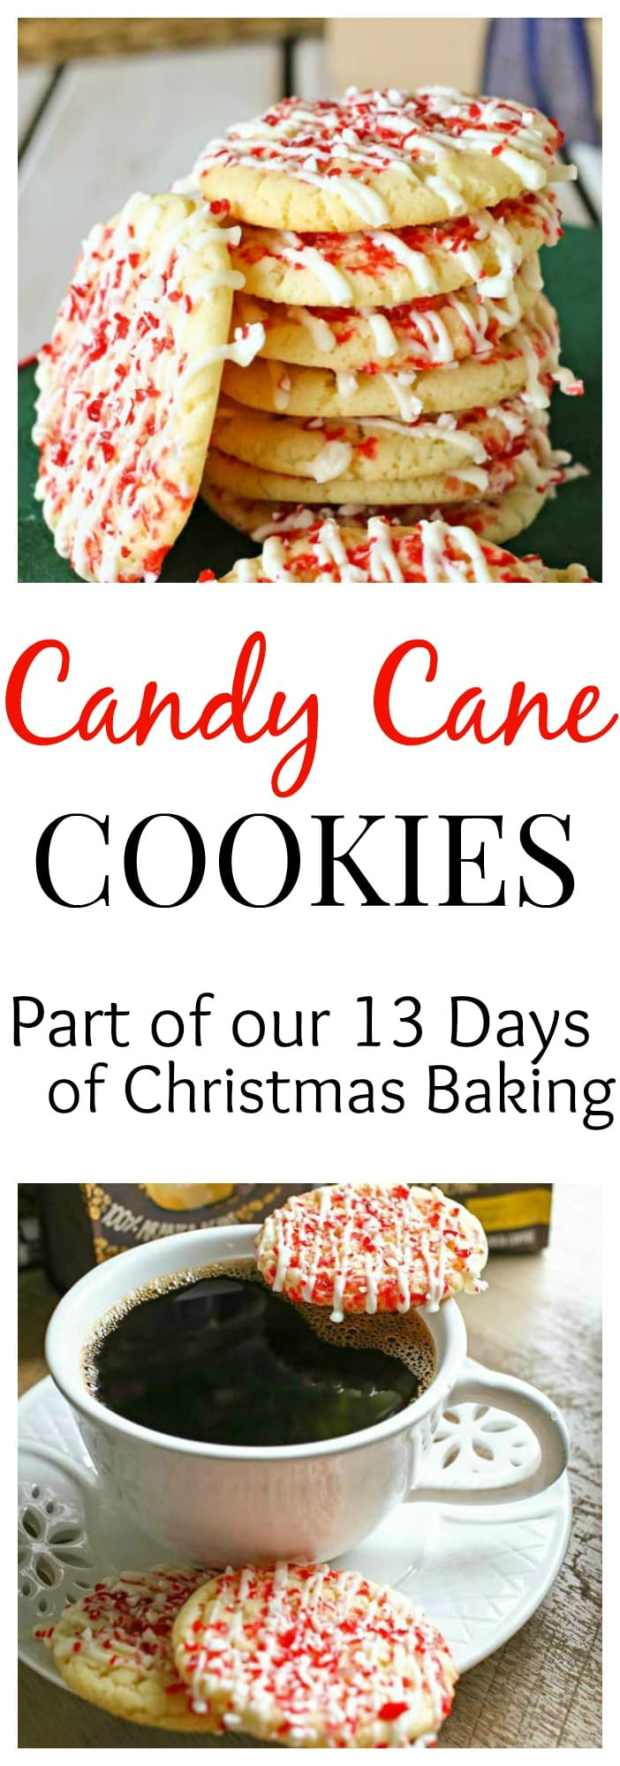 A delicious Candy Cane Cookie, perfectly soft and drizzled with white chocolate, it is the perfect cookie for dipping in your hot cocoa!